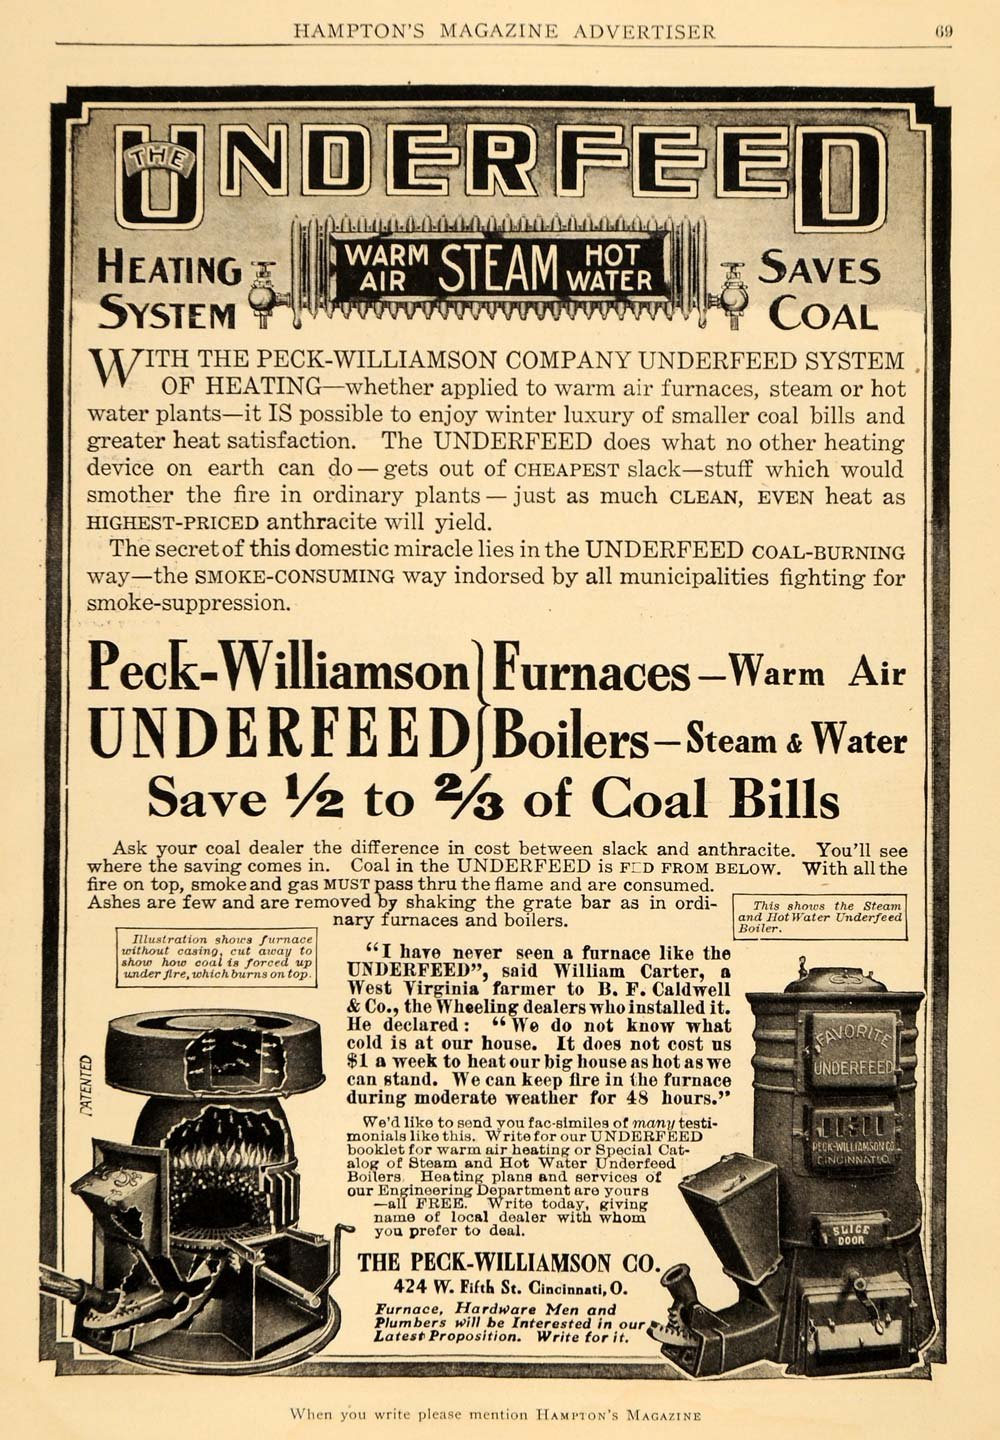 Amazon.com: 1909 Ad Peck-Williamson Underfeed Furnaces Boilers Heat ...